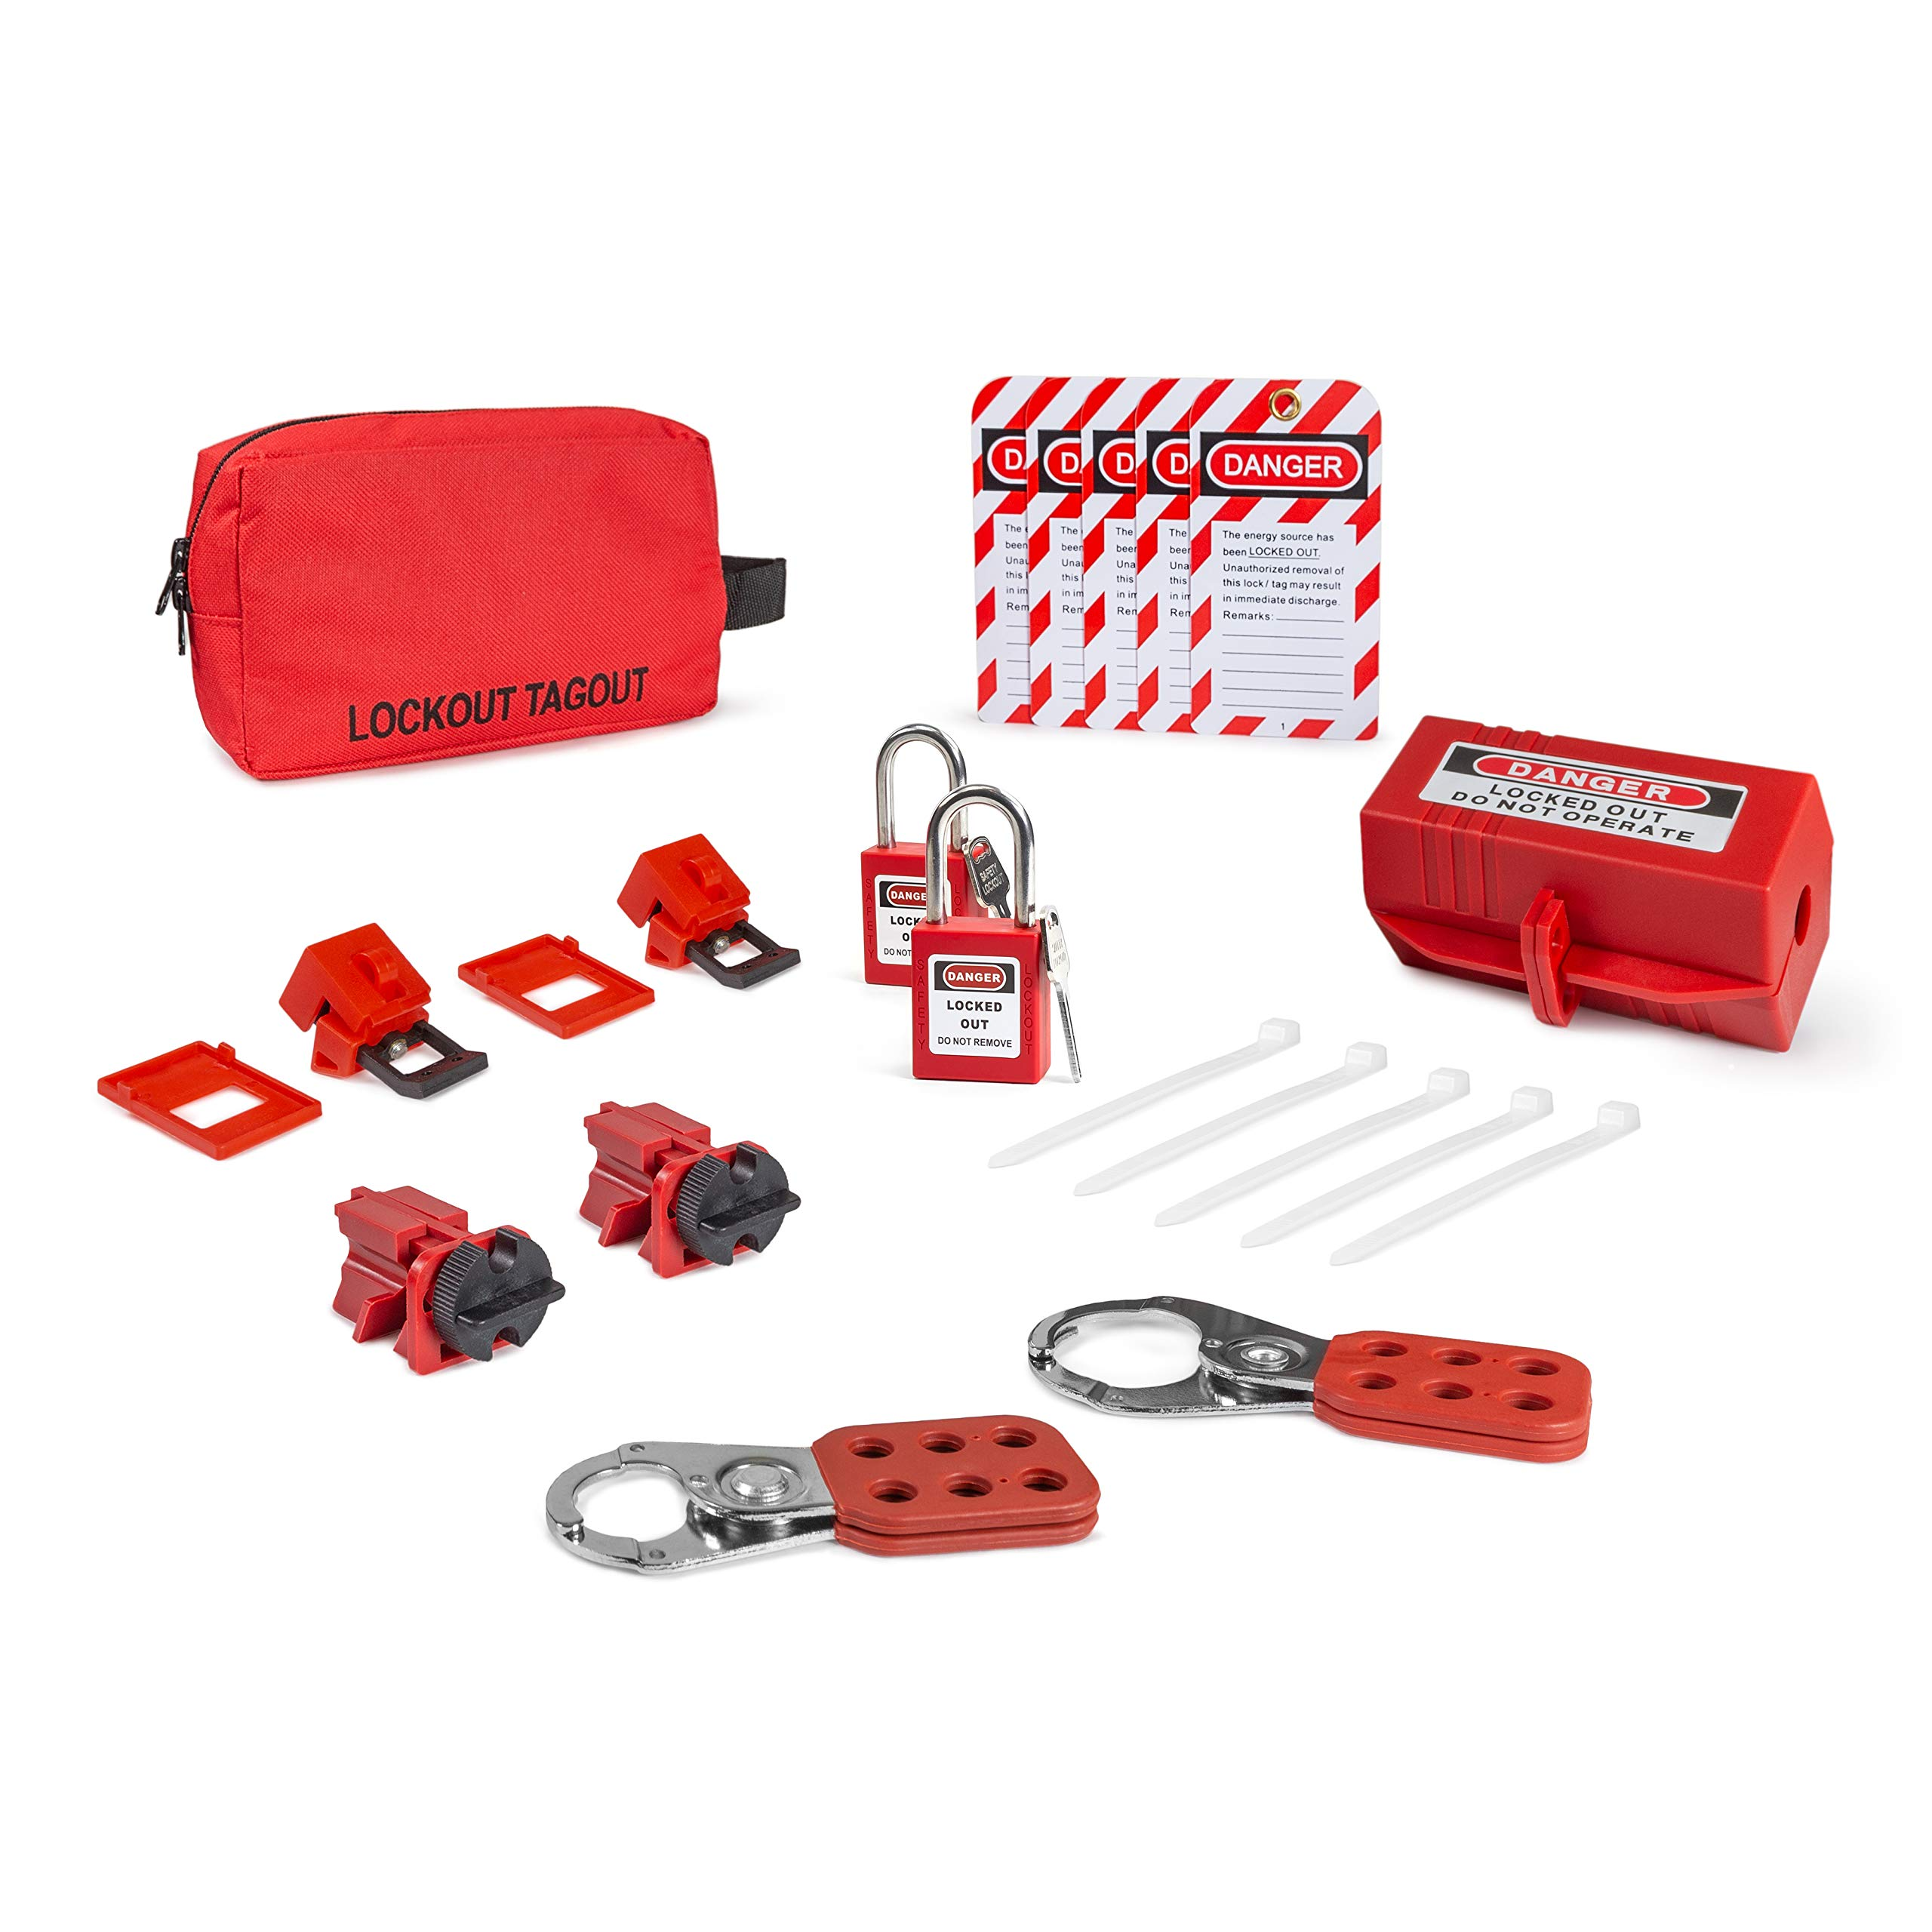 Electrical Lockout TAGOUT KIT w/Hasps, Clamp On Breaker Lockouts, Universal Multipole Breaker Lockouts, Loto Tags, Plug Lockout, Lockout Tagout Safety Padlocks | OSHA Compliance for Lock Out tag Out by TRADESAFE